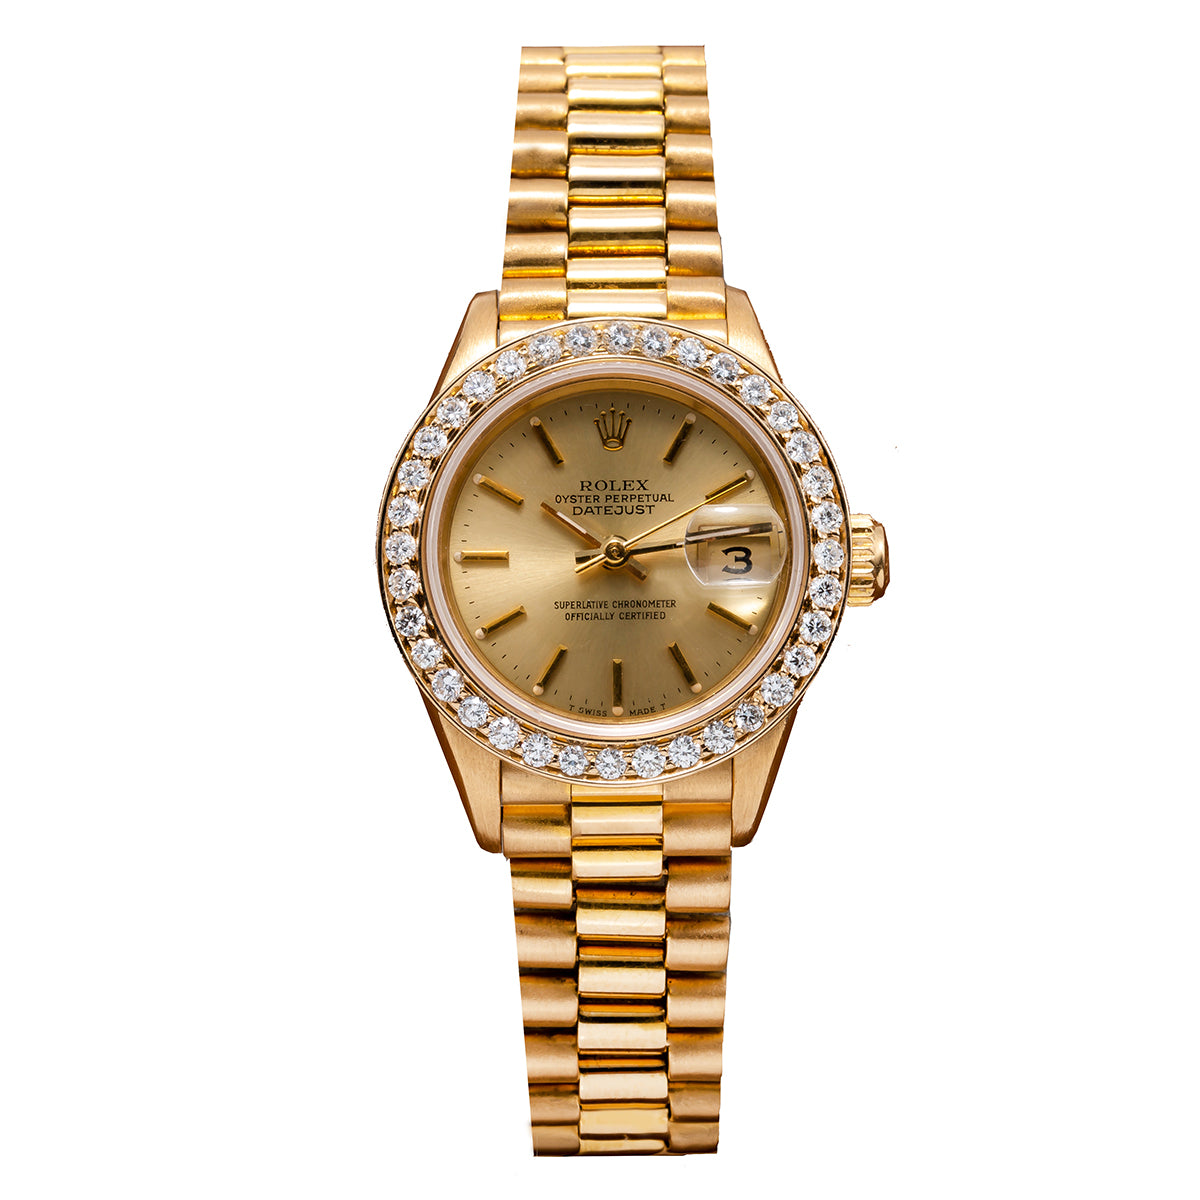 18K Yellow Gold Rolex Diamond Watch, Datejust President 69178, Champagne Dial With 0.80CT Diamond Bezel